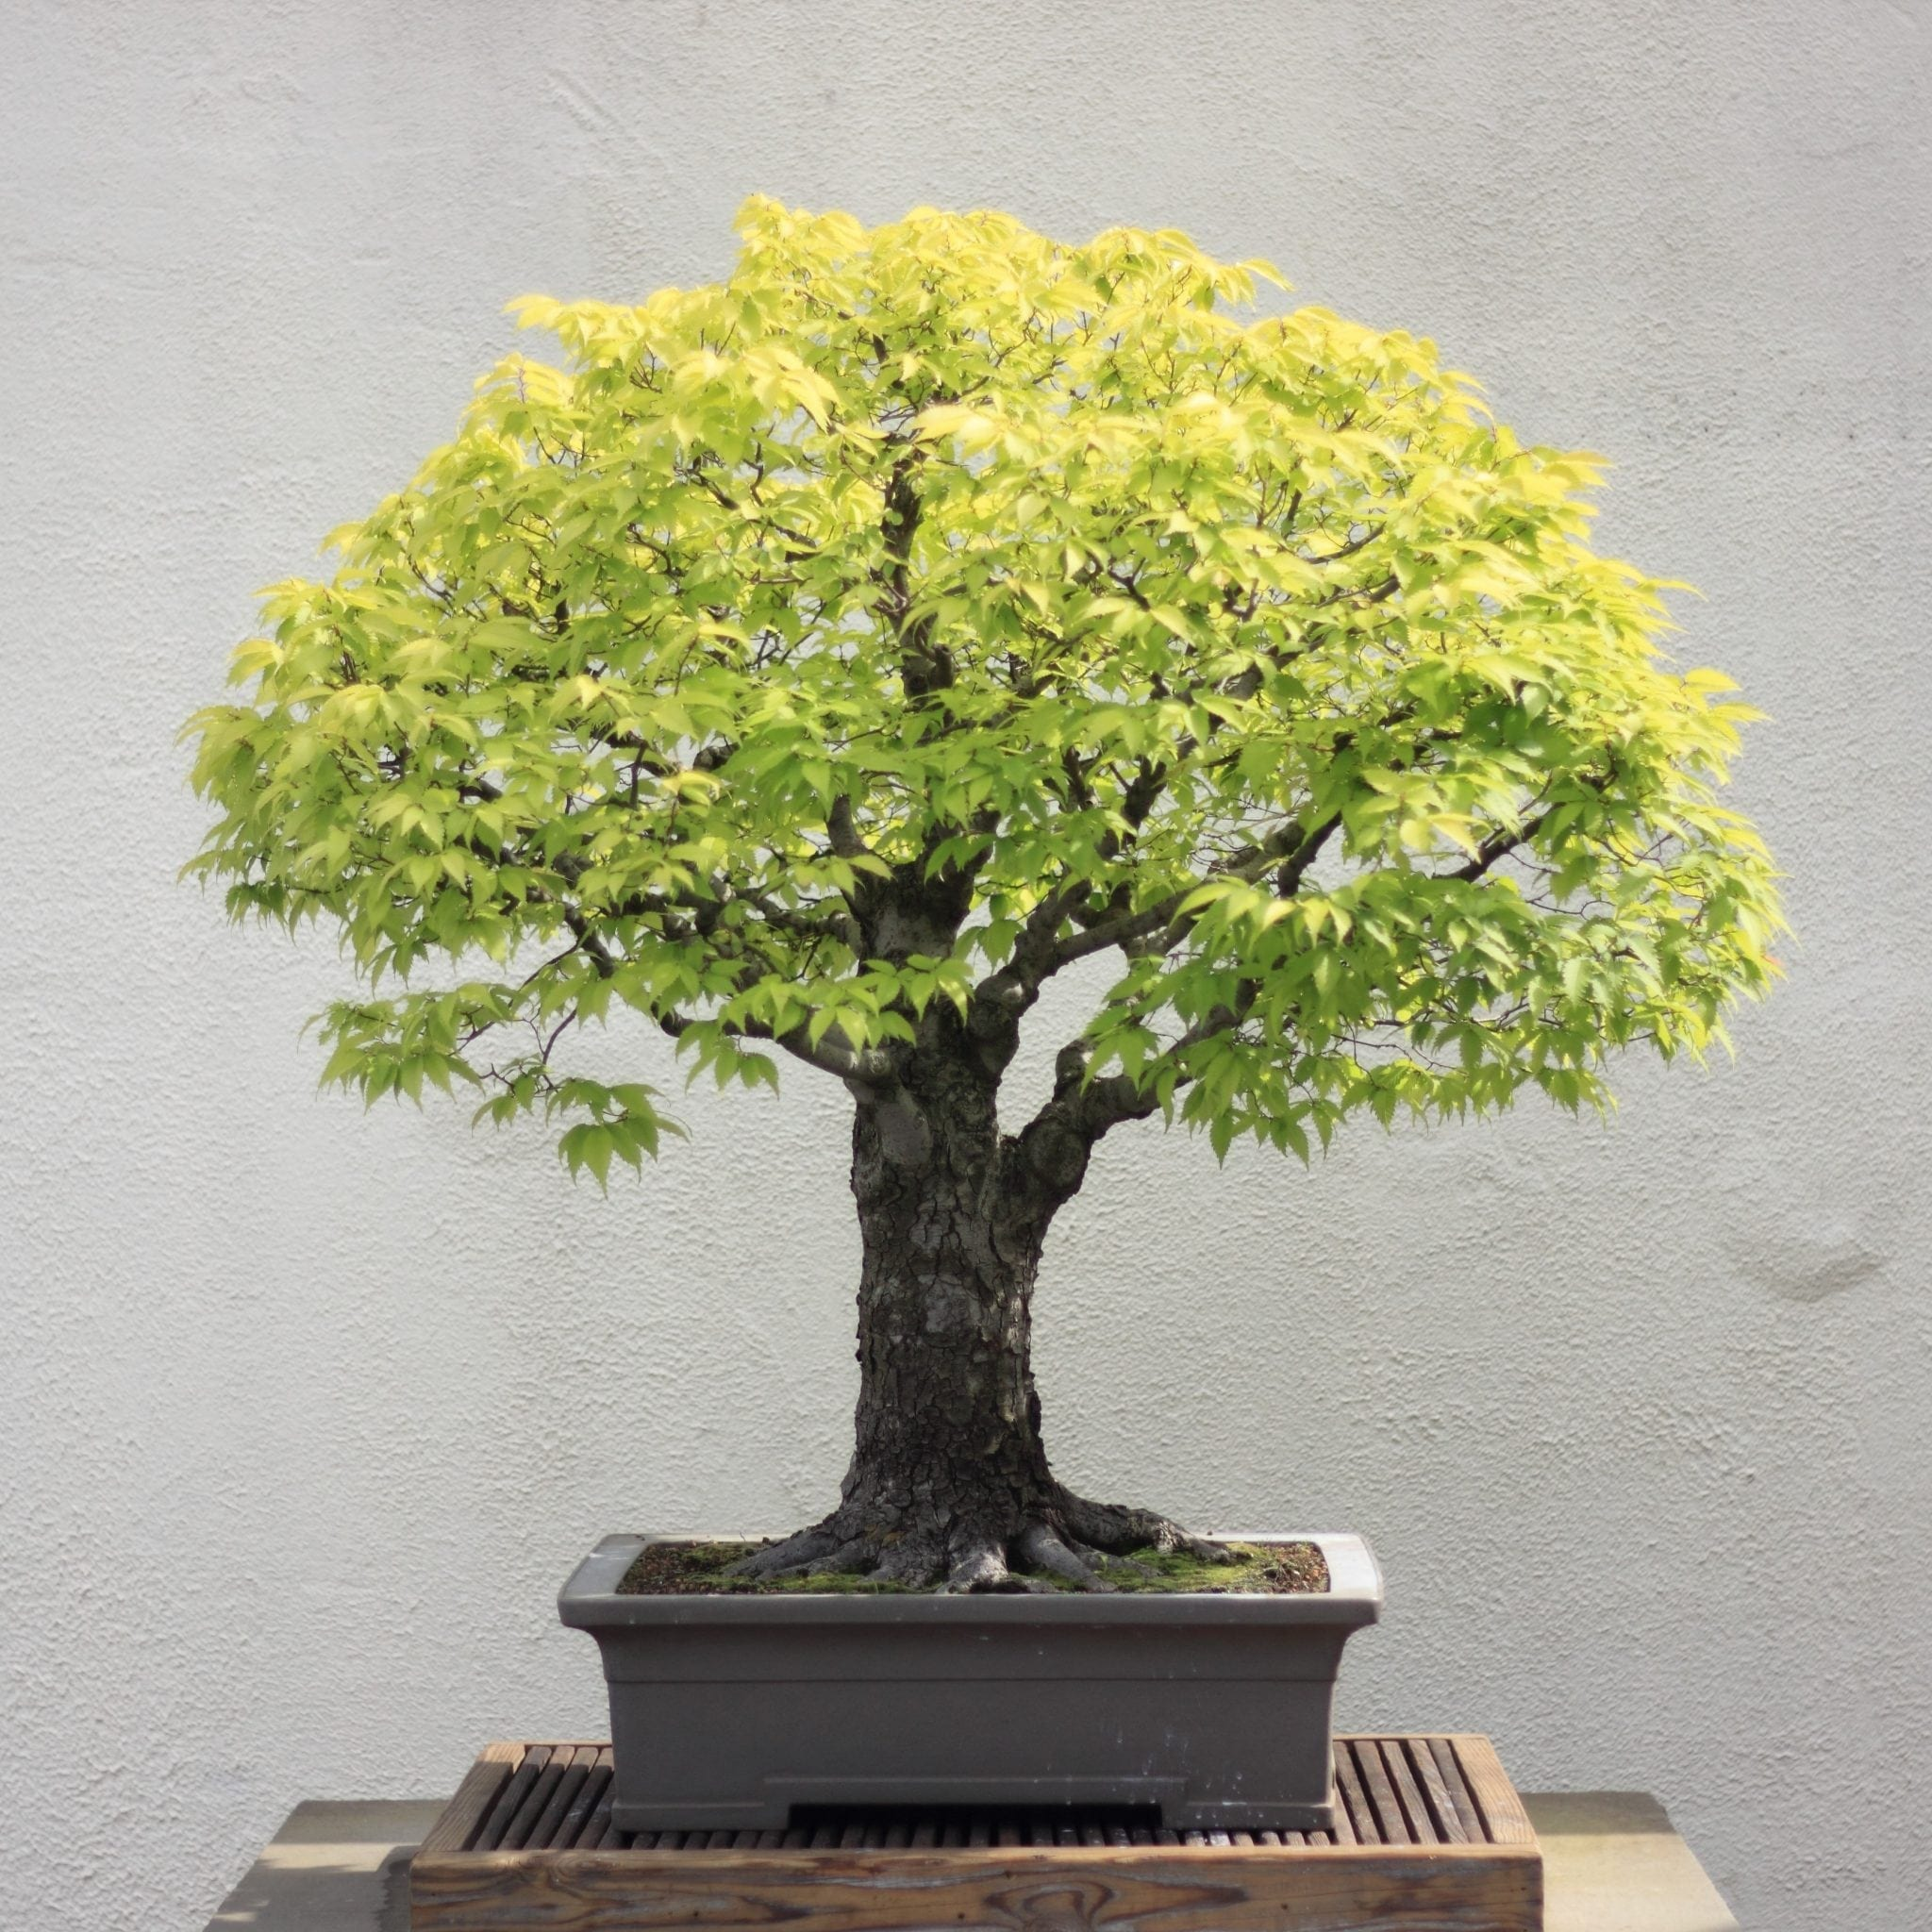 Japanese Elm Bonsai Tree Care Guide Zelkova Serrata Bonsai Tree Gardener